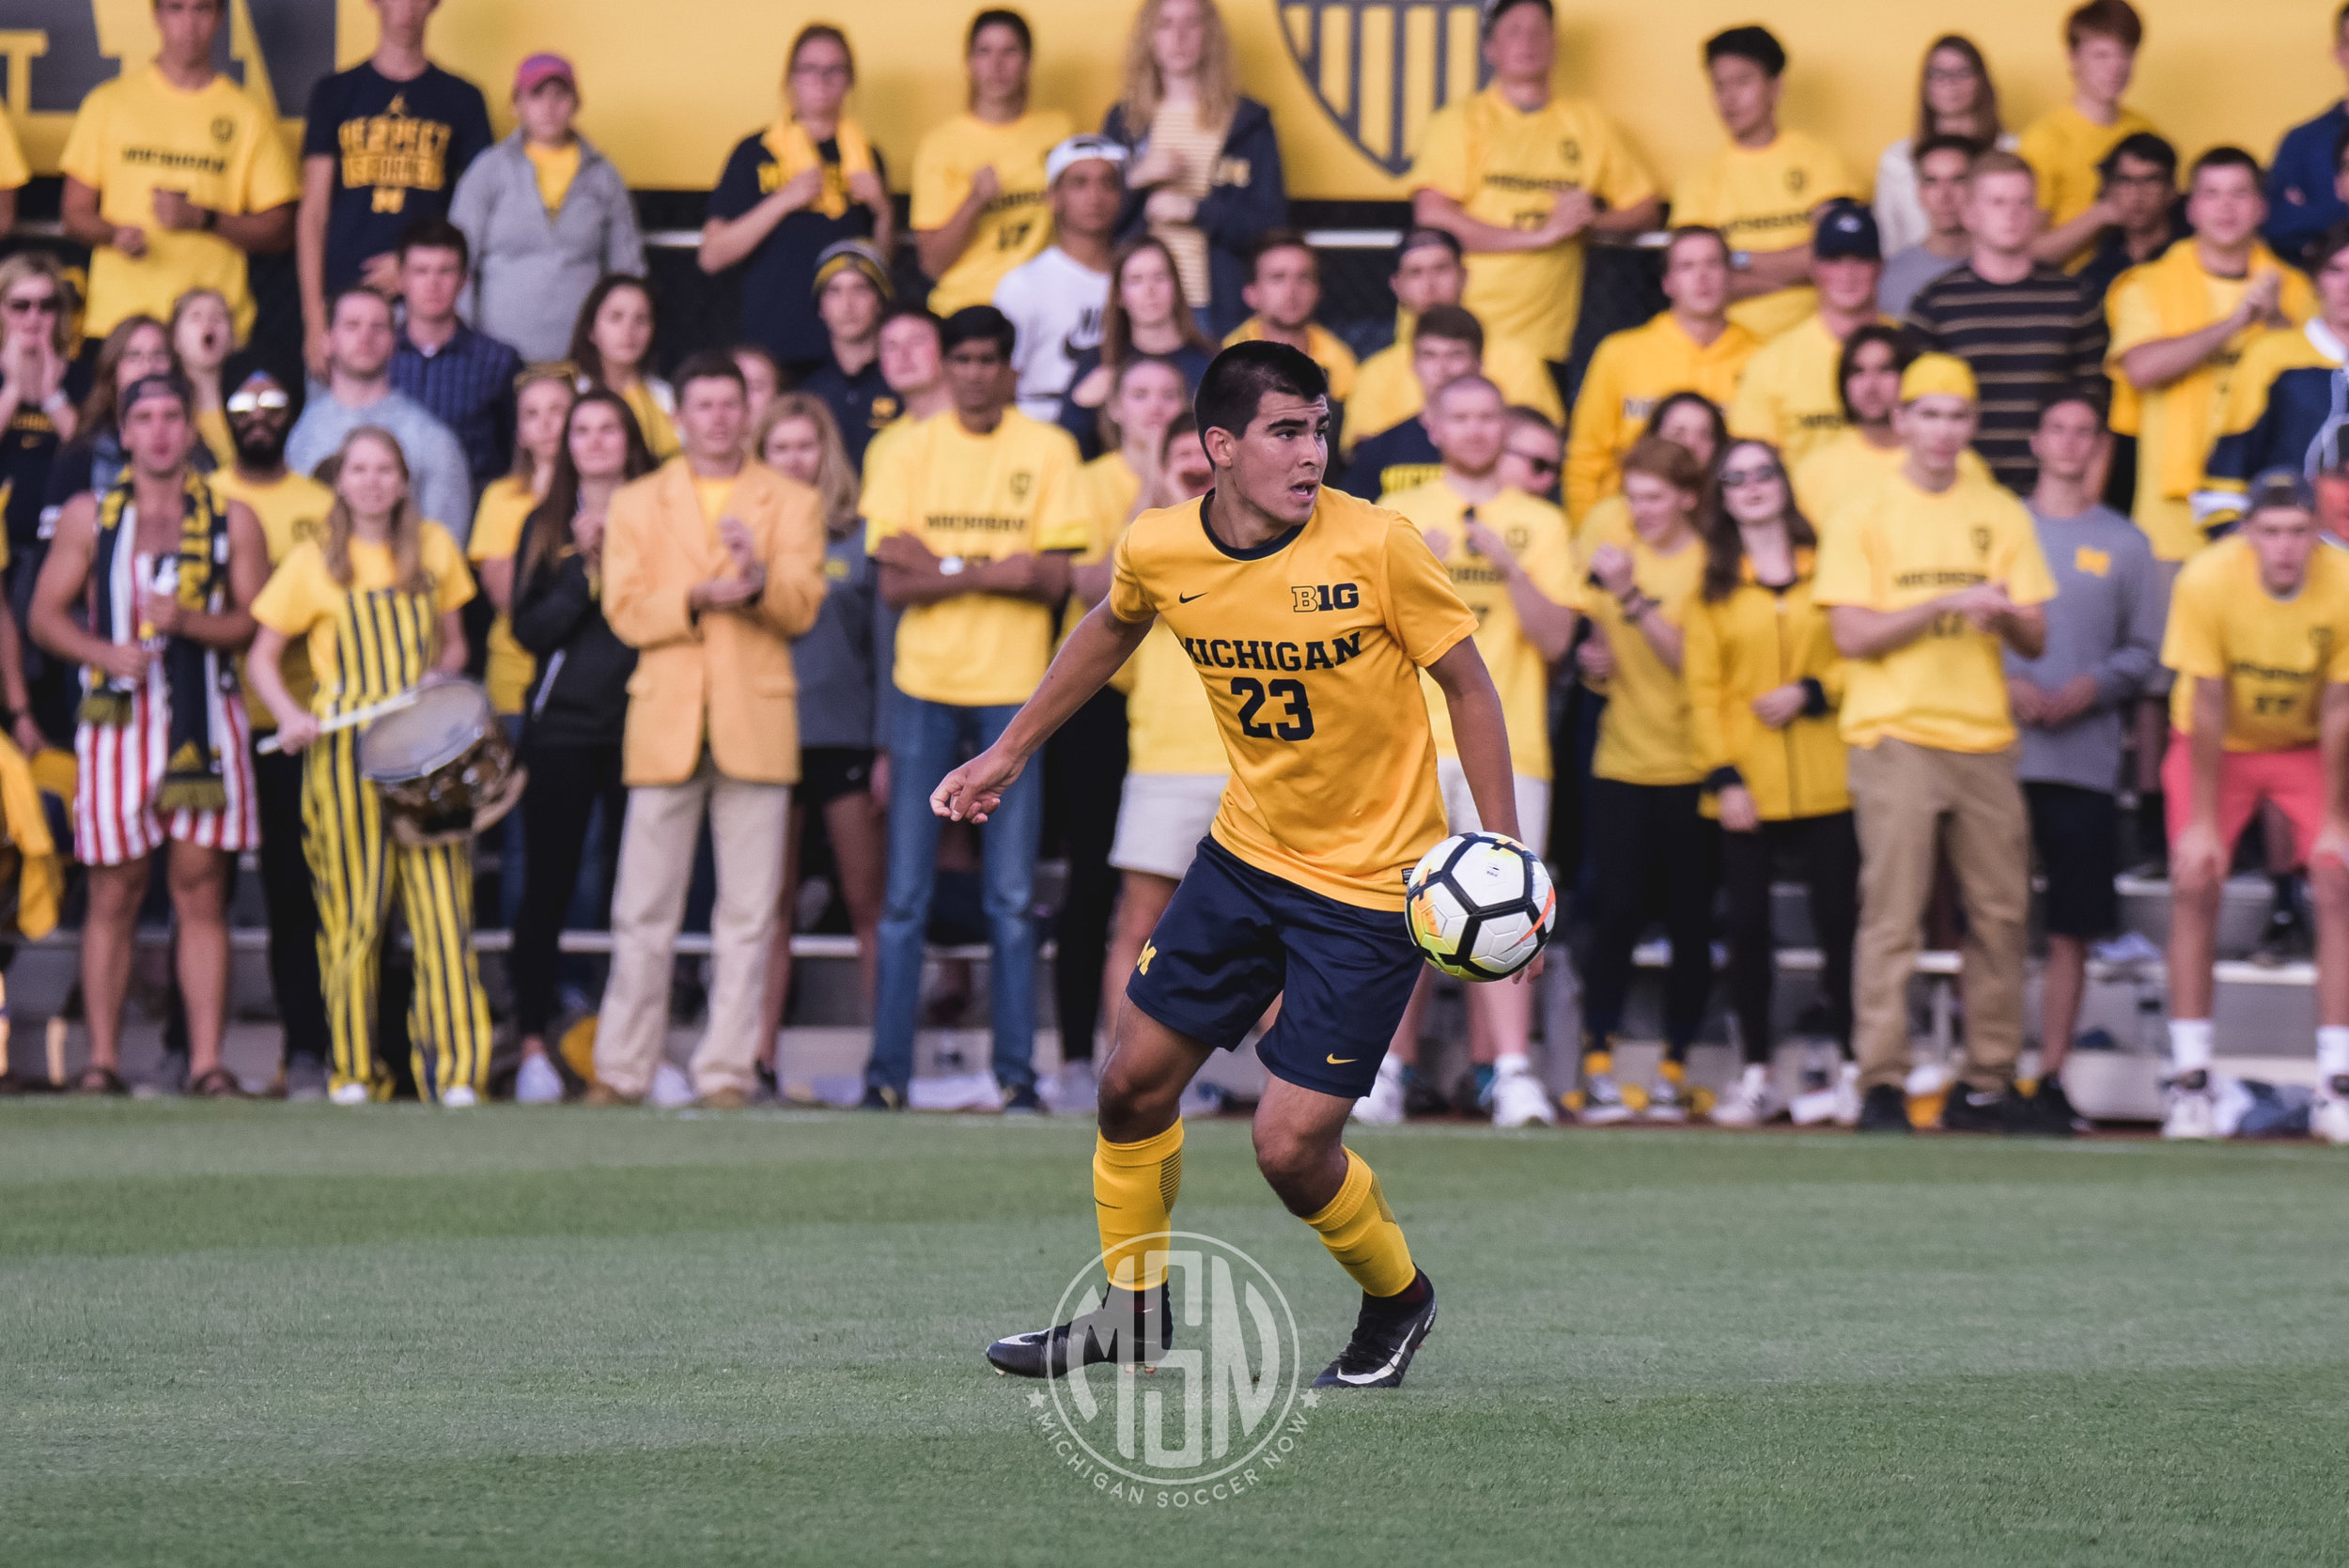 Marc Ybarra (23) will be spending his summer with the NPSL's AFC Ann Arbor